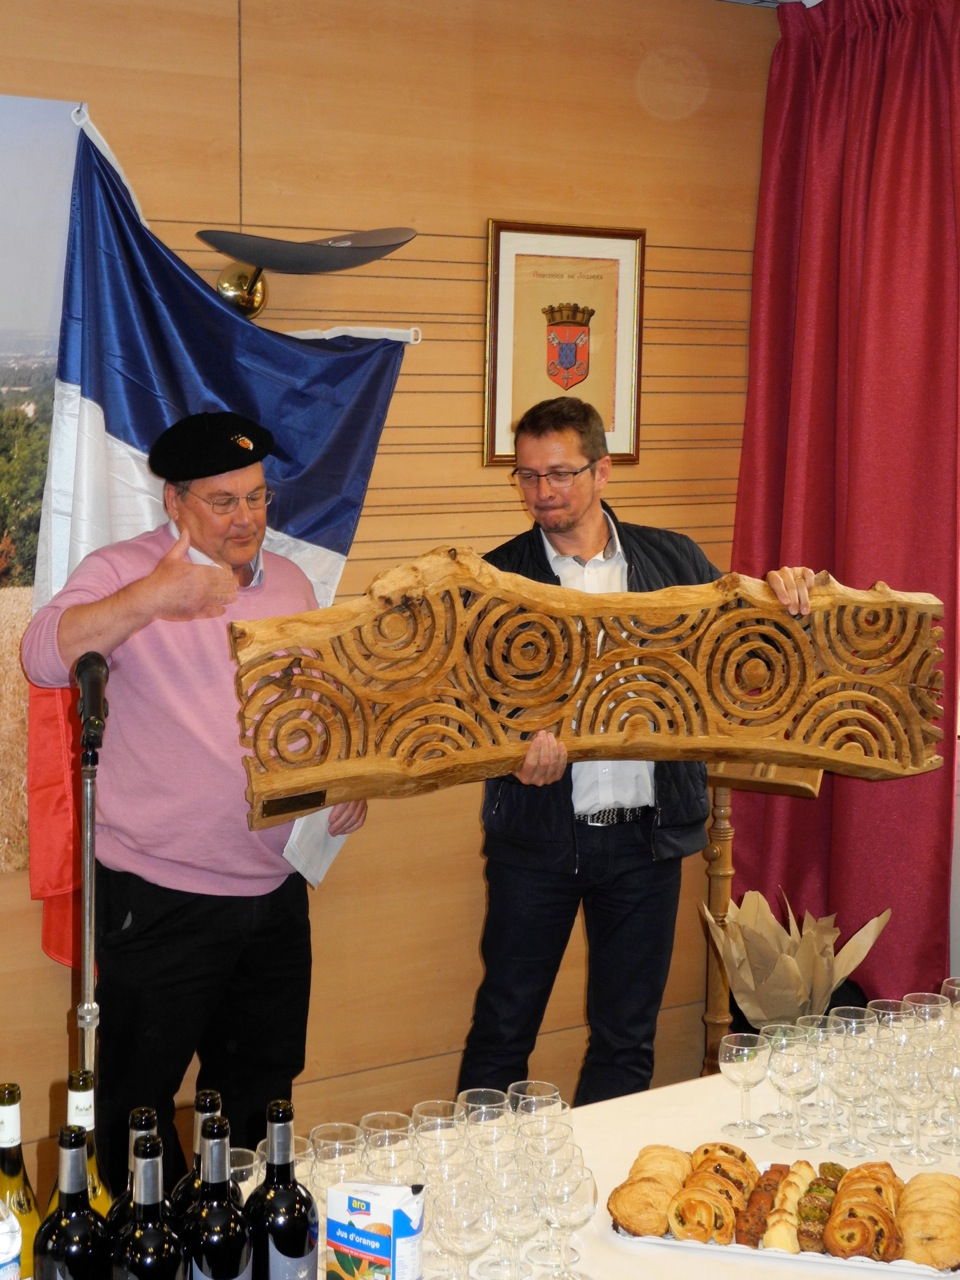 John Graham presents Keith Pettit's sculpture to Juziers' mayor, Philippe Ferrand